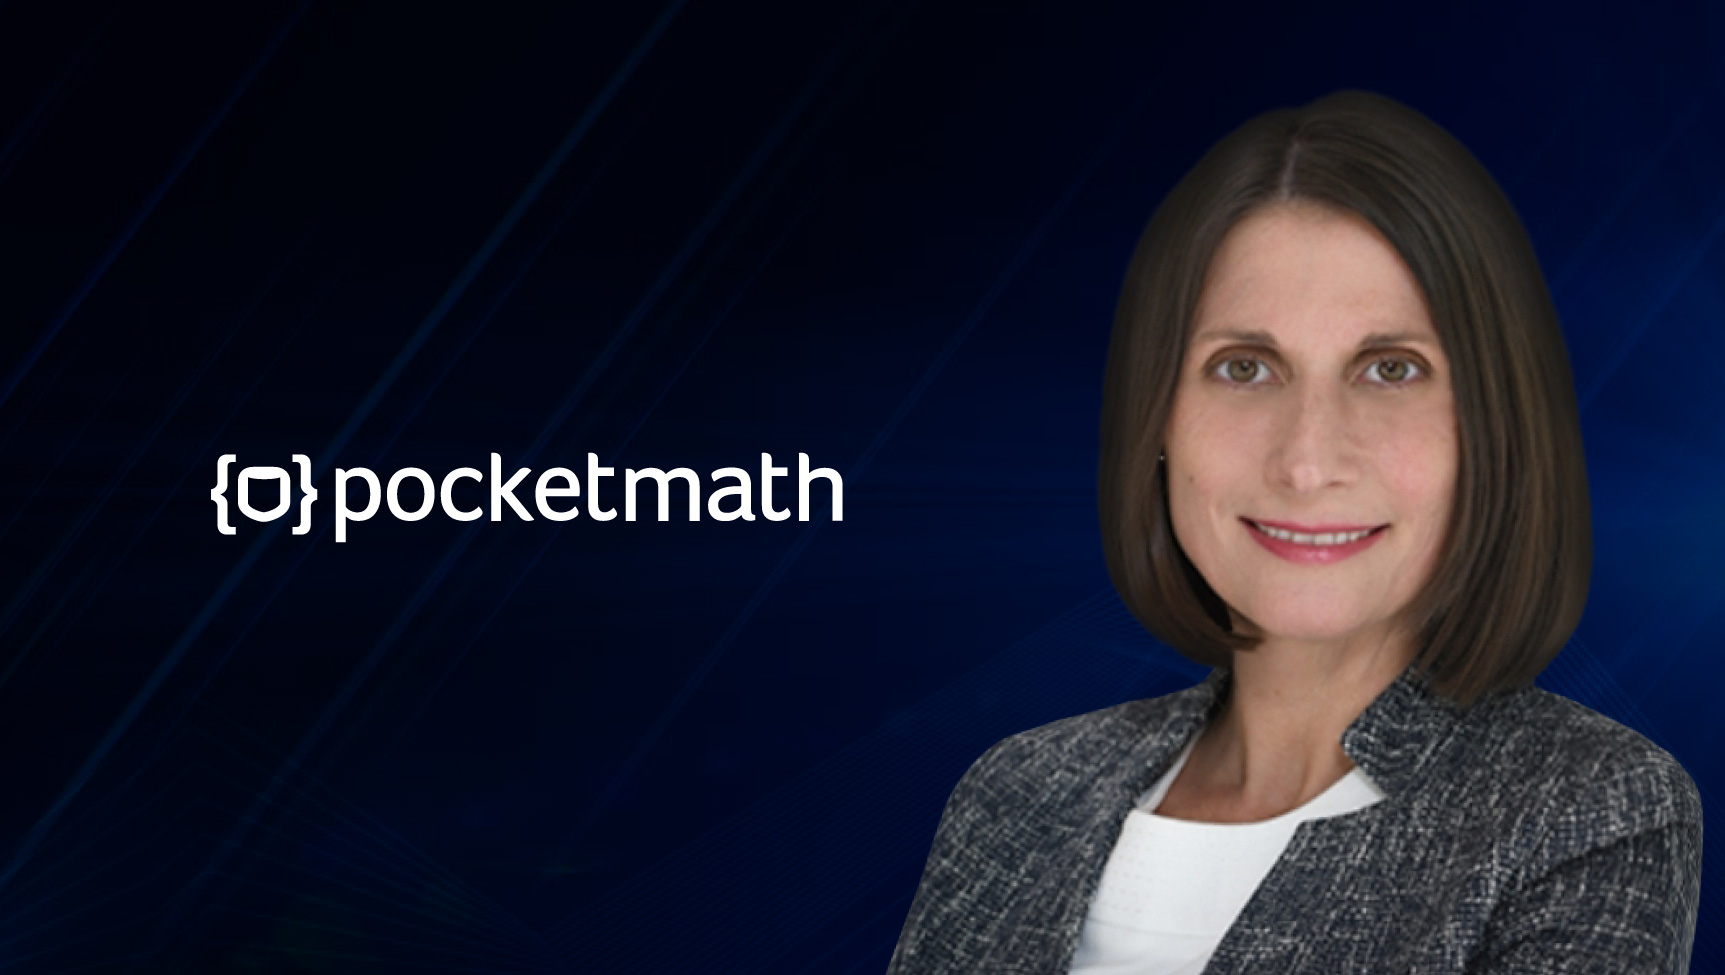 SalesTech Interview with Joanne Joynson-Hewlett, CEO at Pocketmath